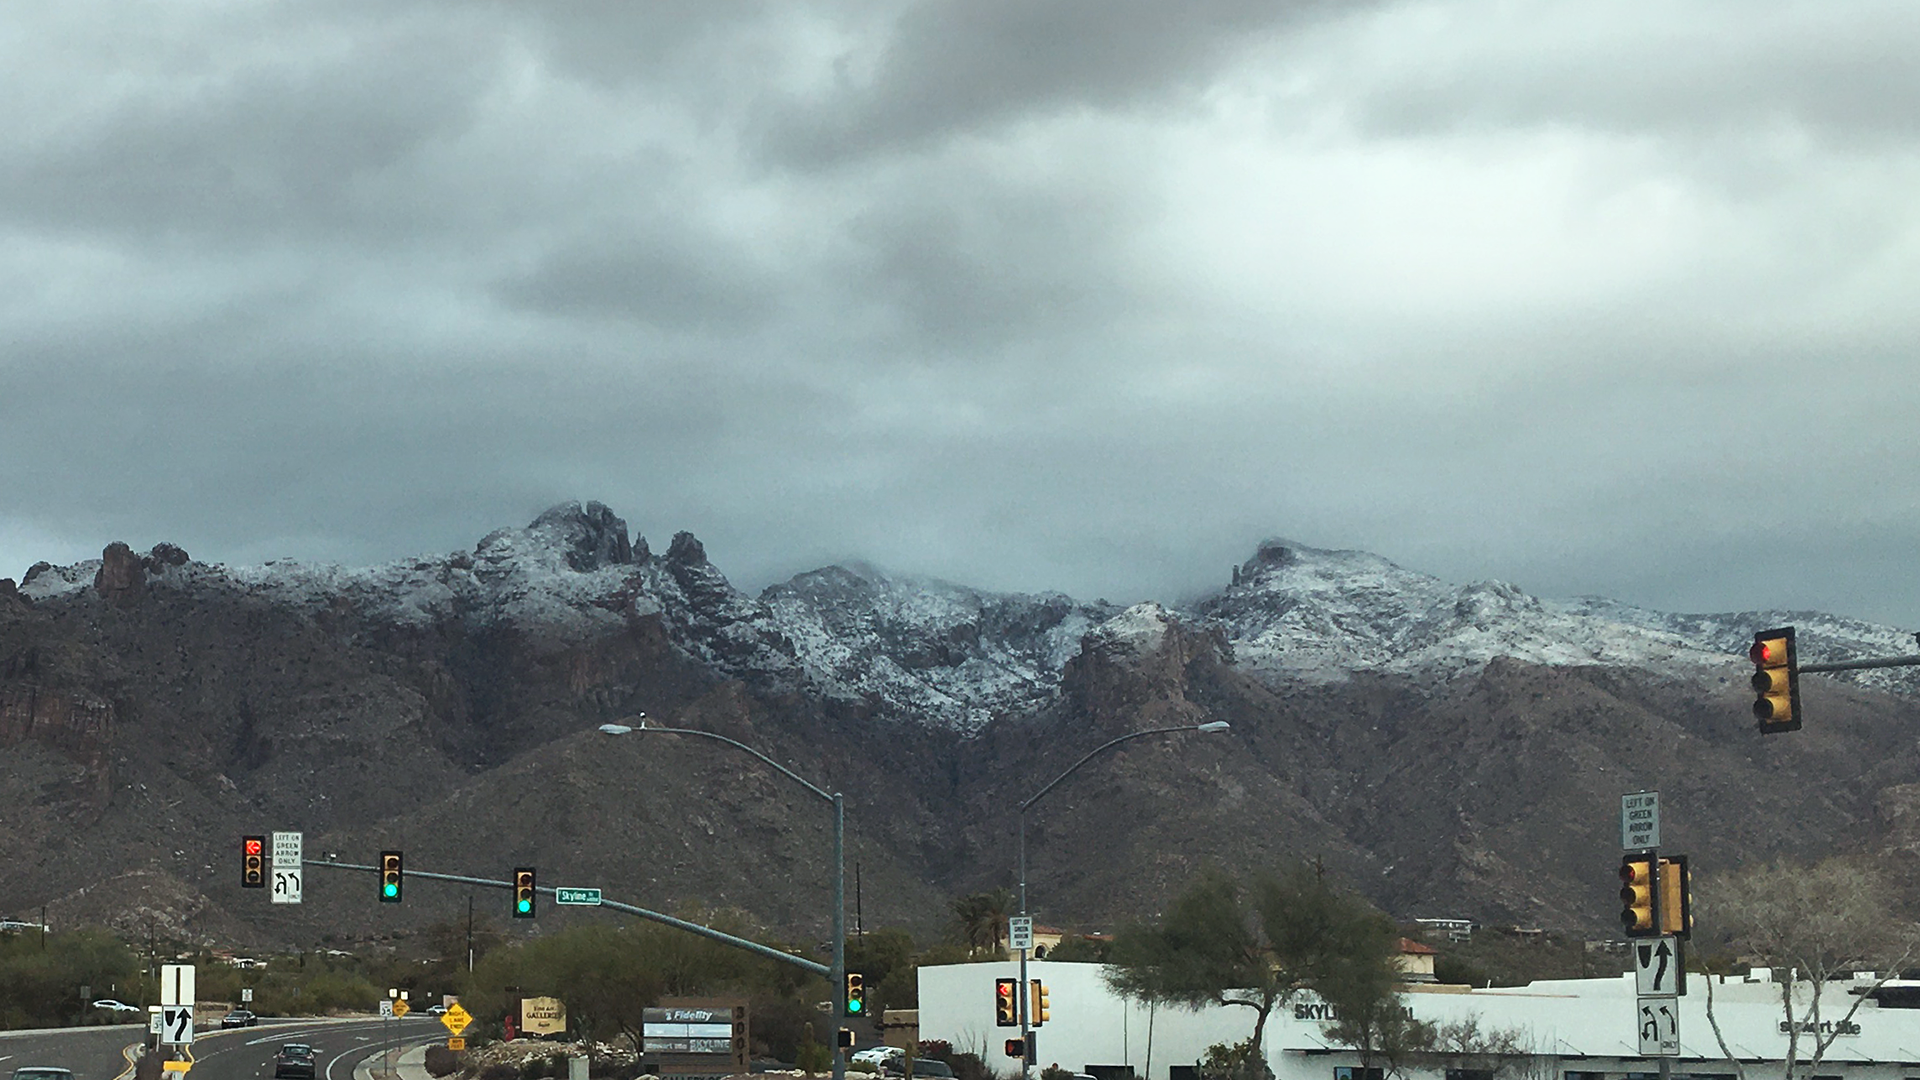 The view of the snowcapped Santa Catalina Mountains at Campbell Avenue and Skyline Drive in Tucson Jan. 25, 2020.